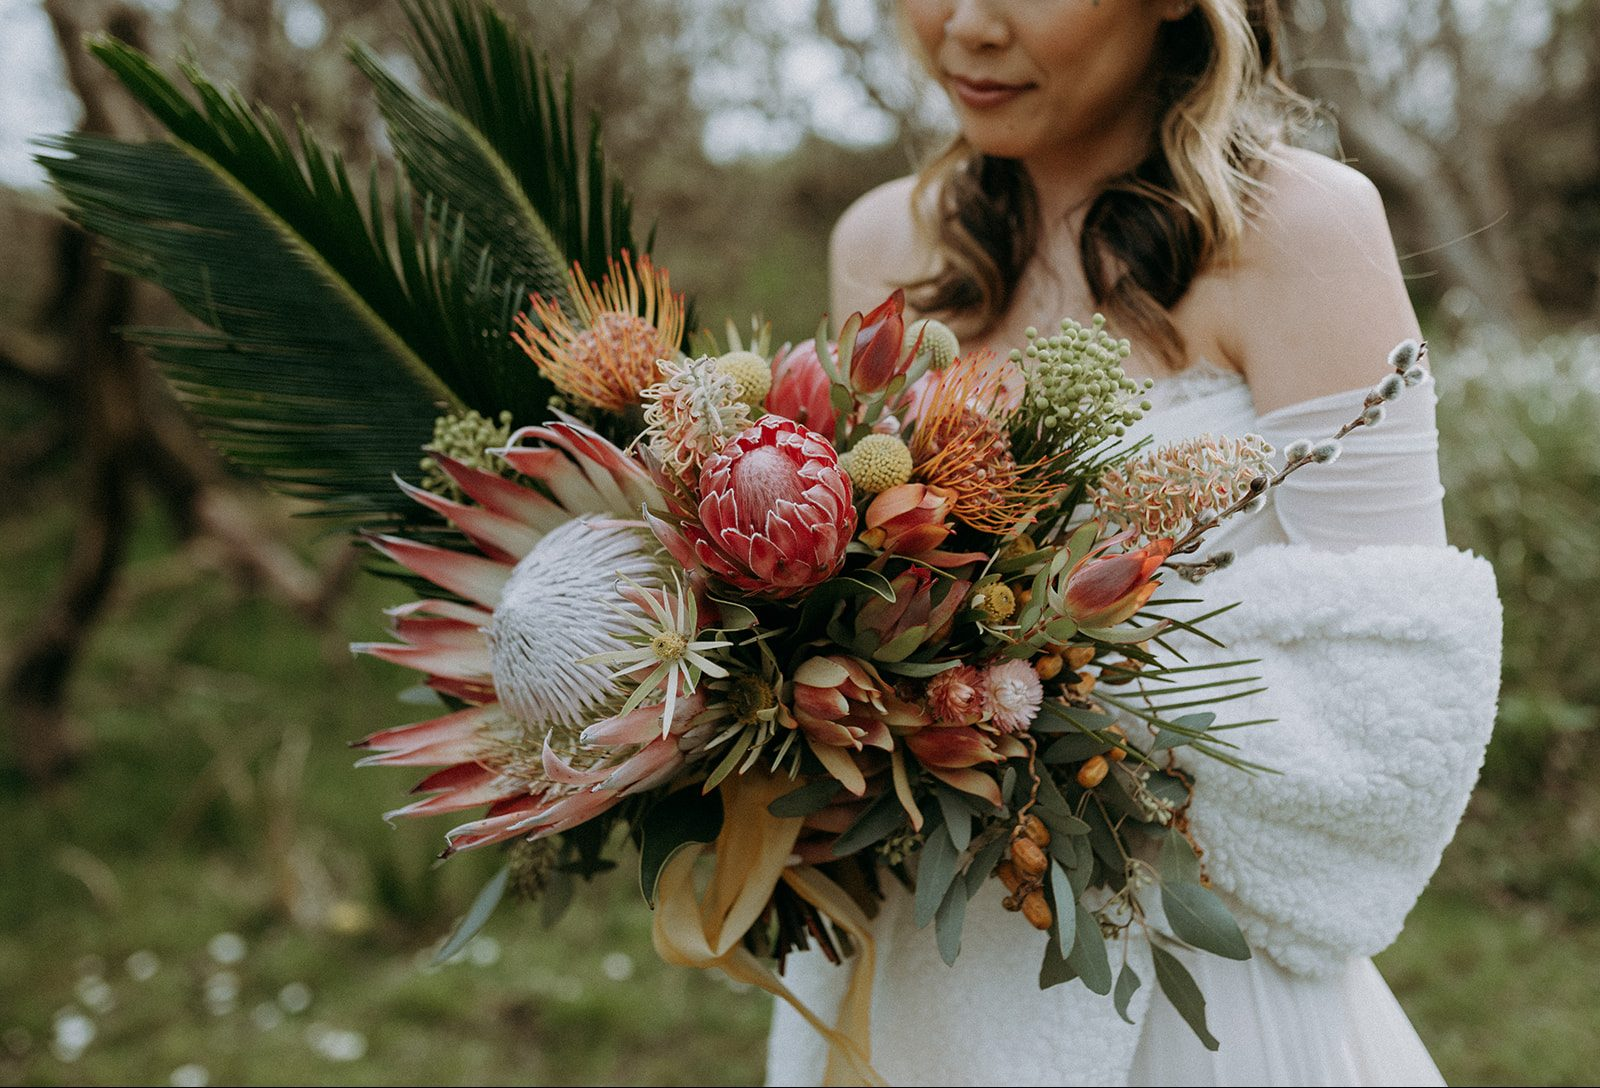 bride holding a wedding bouquet full of tropical flowers like protea, leucadendron, palm leaves, and grevillea